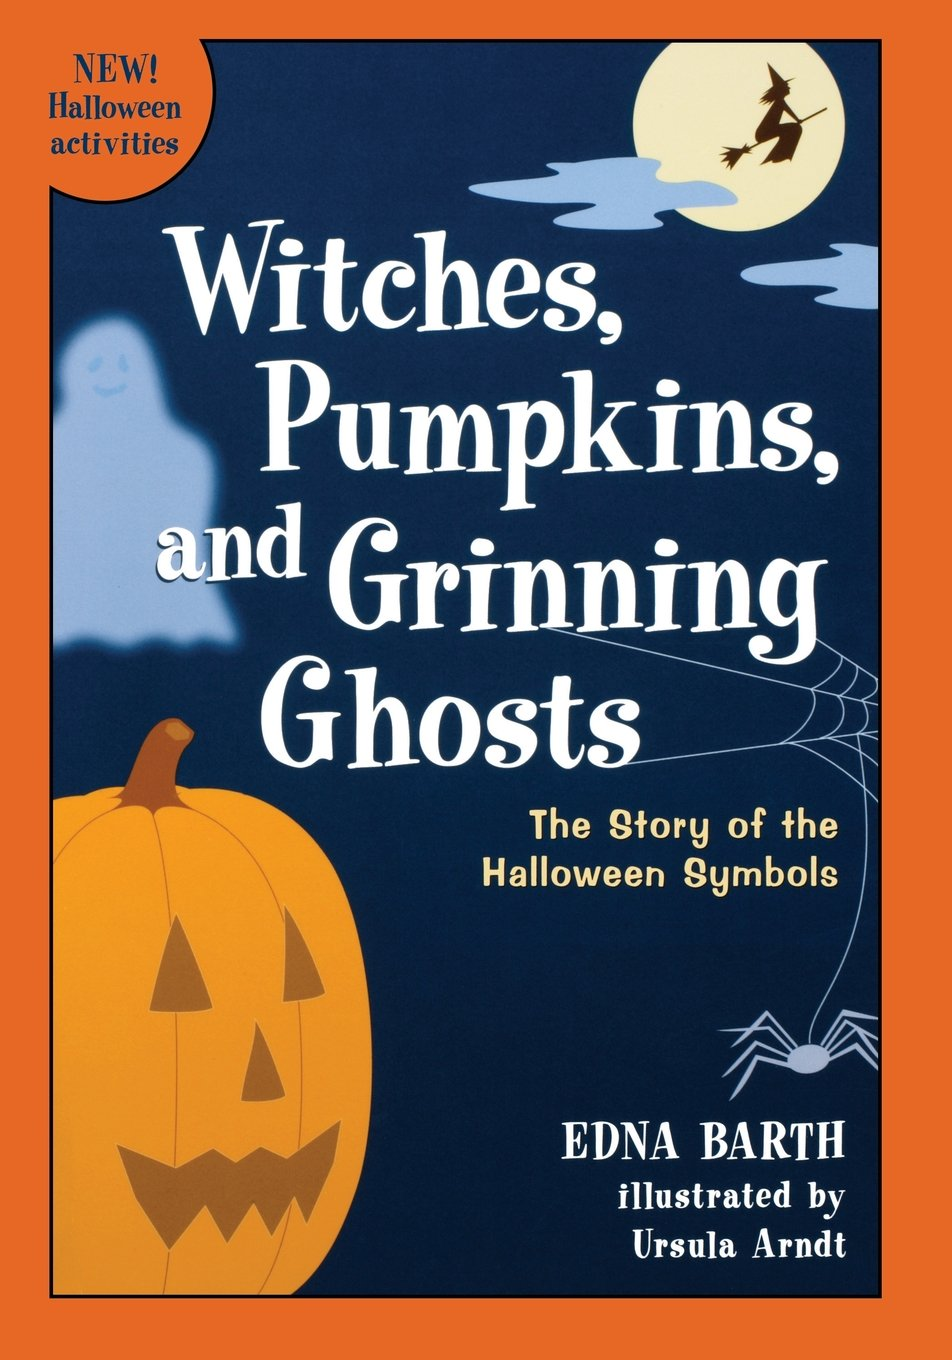 Witches pumpkins and grinning ghosts the story of the halloween witches pumpkins and grinning ghosts the story of the halloween symbols edna barth ursula arndt 9780618067824 amazon books biocorpaavc Choice Image